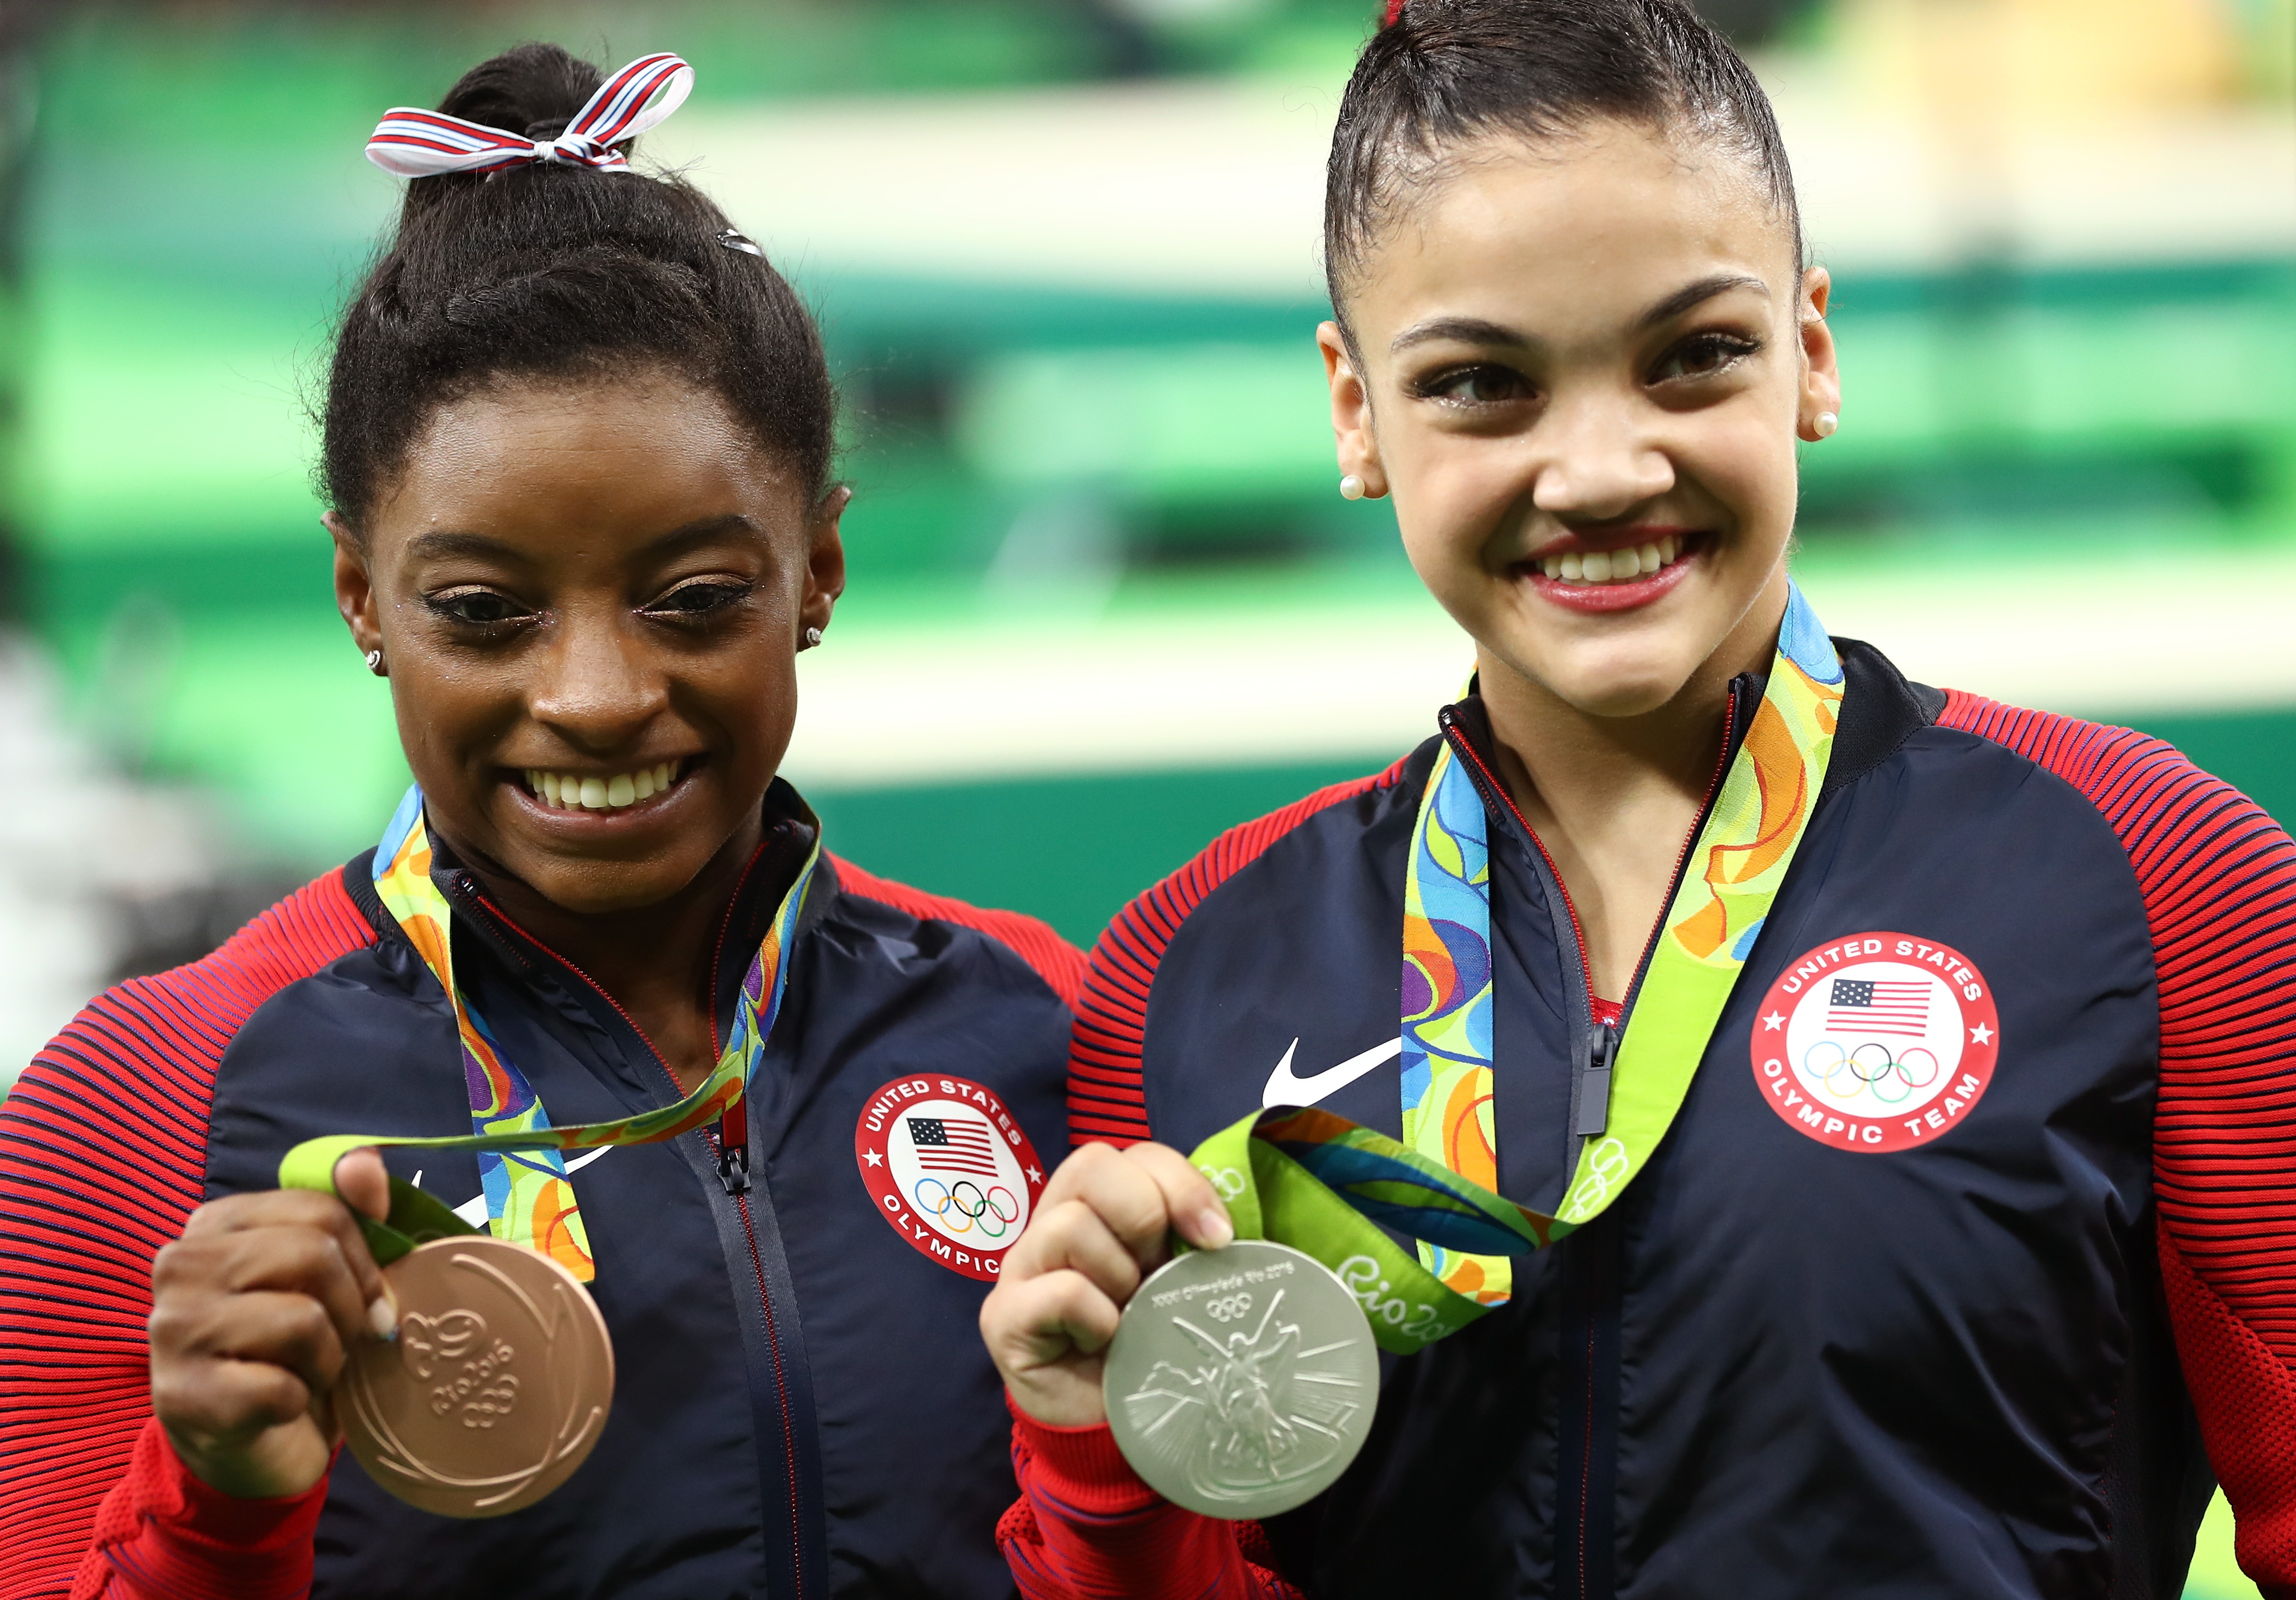 Simone Biles posted the cutest throwback pic with Laurie Hernandez, and we're on happy overload